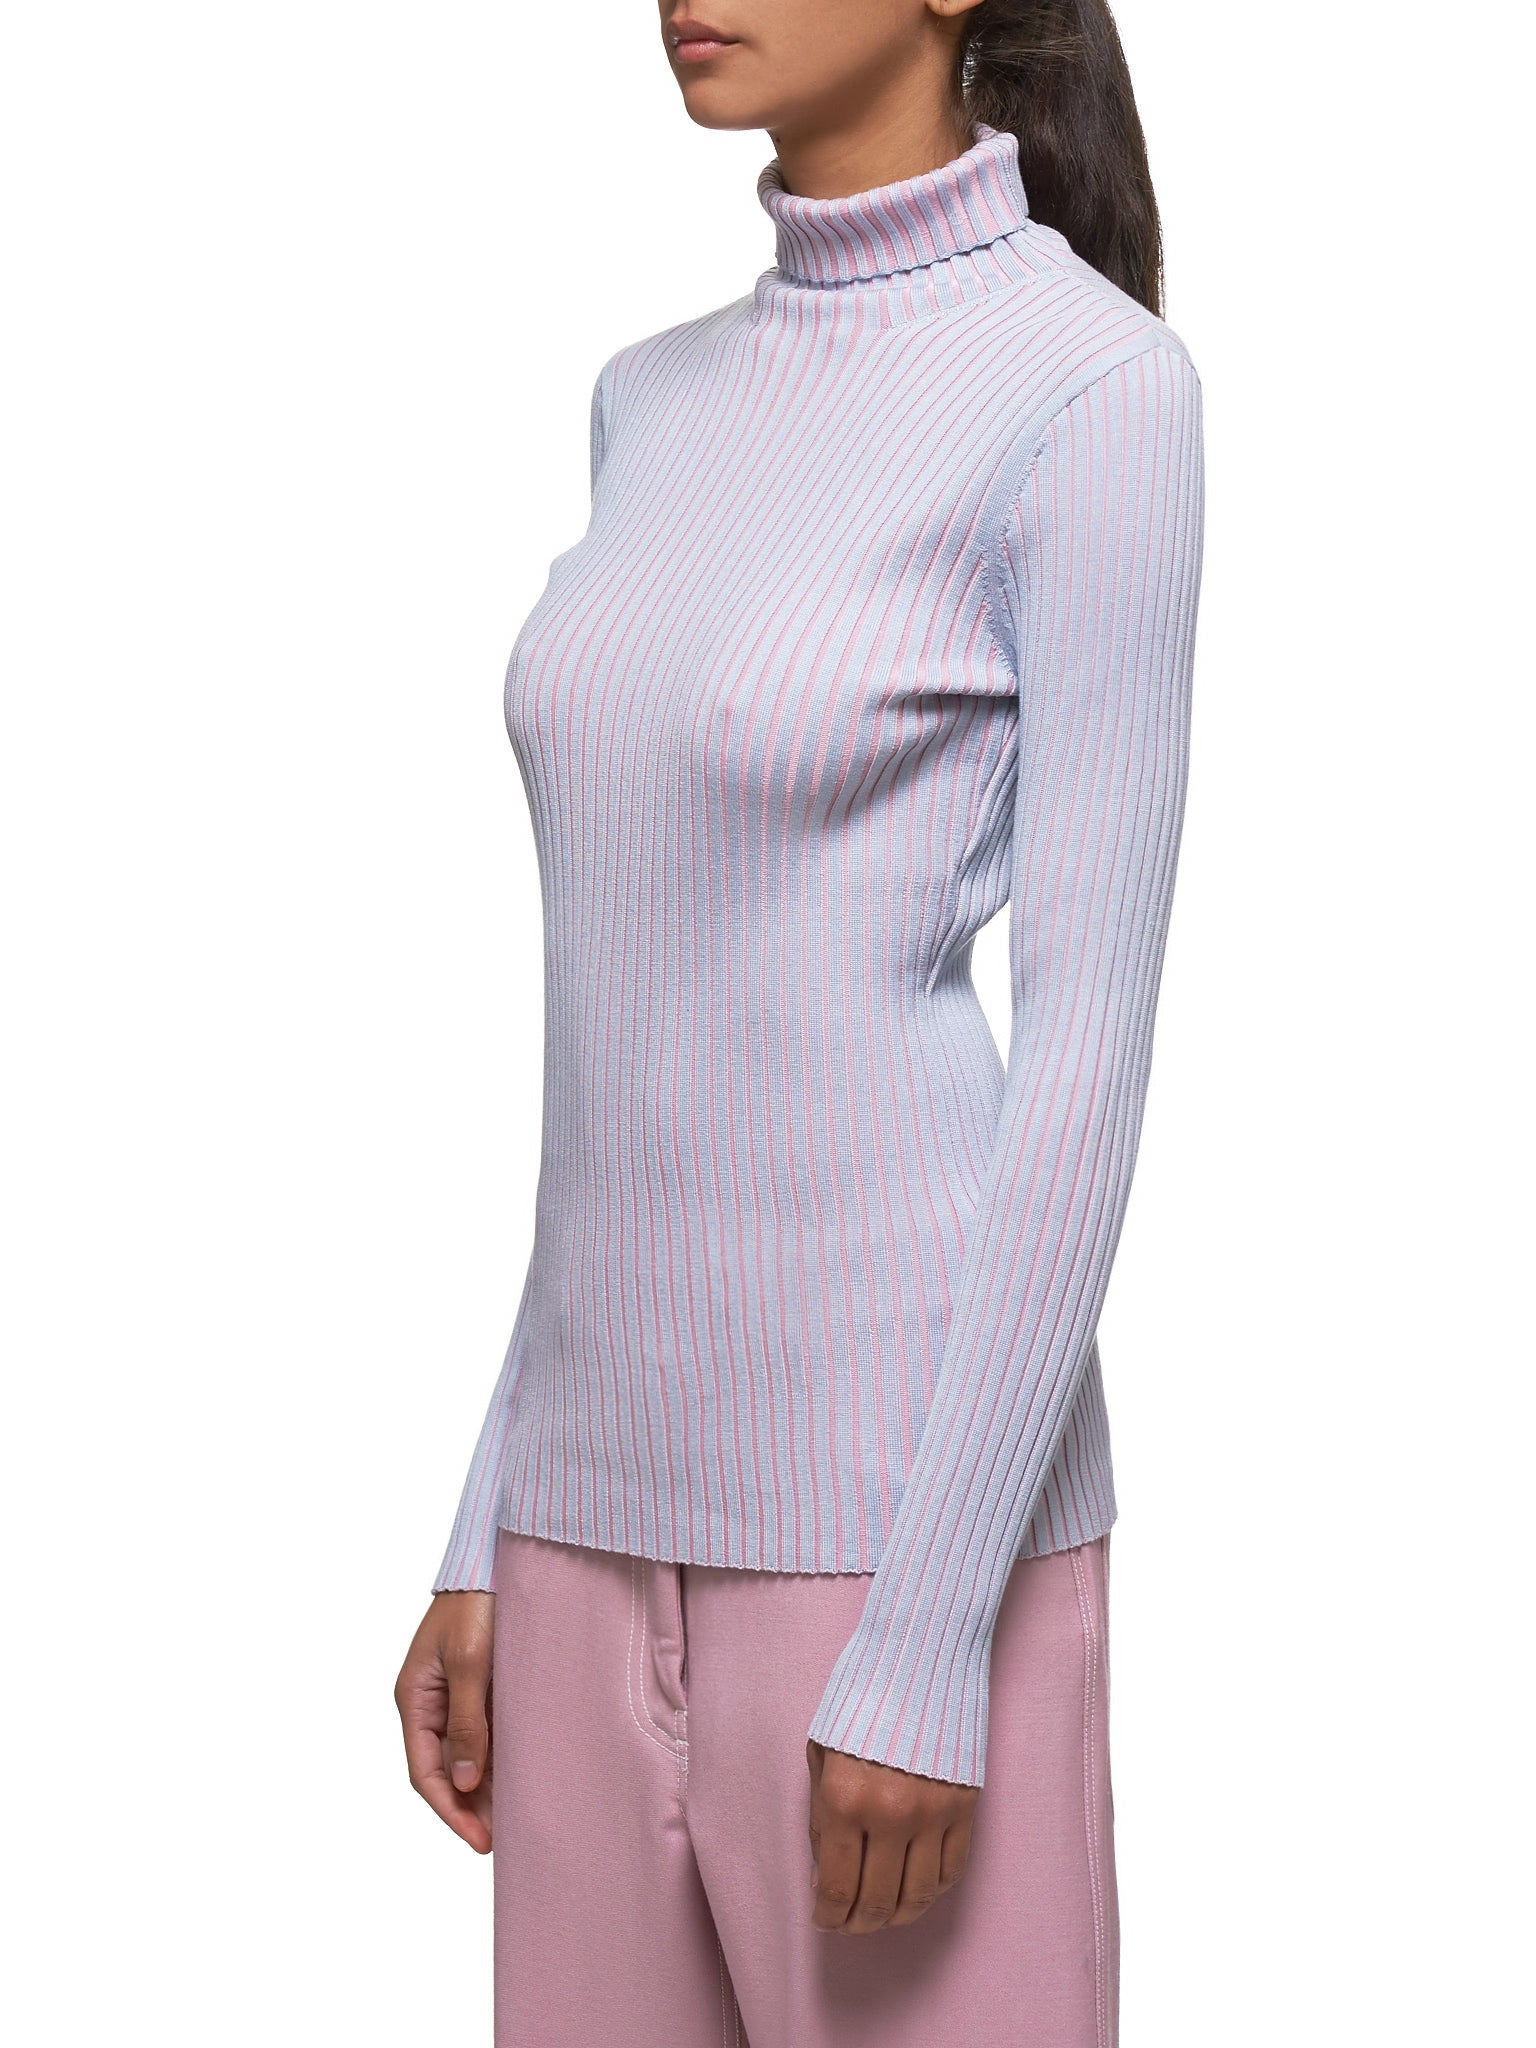 Sies Marjan Turtleneck - Hlorenzo Side